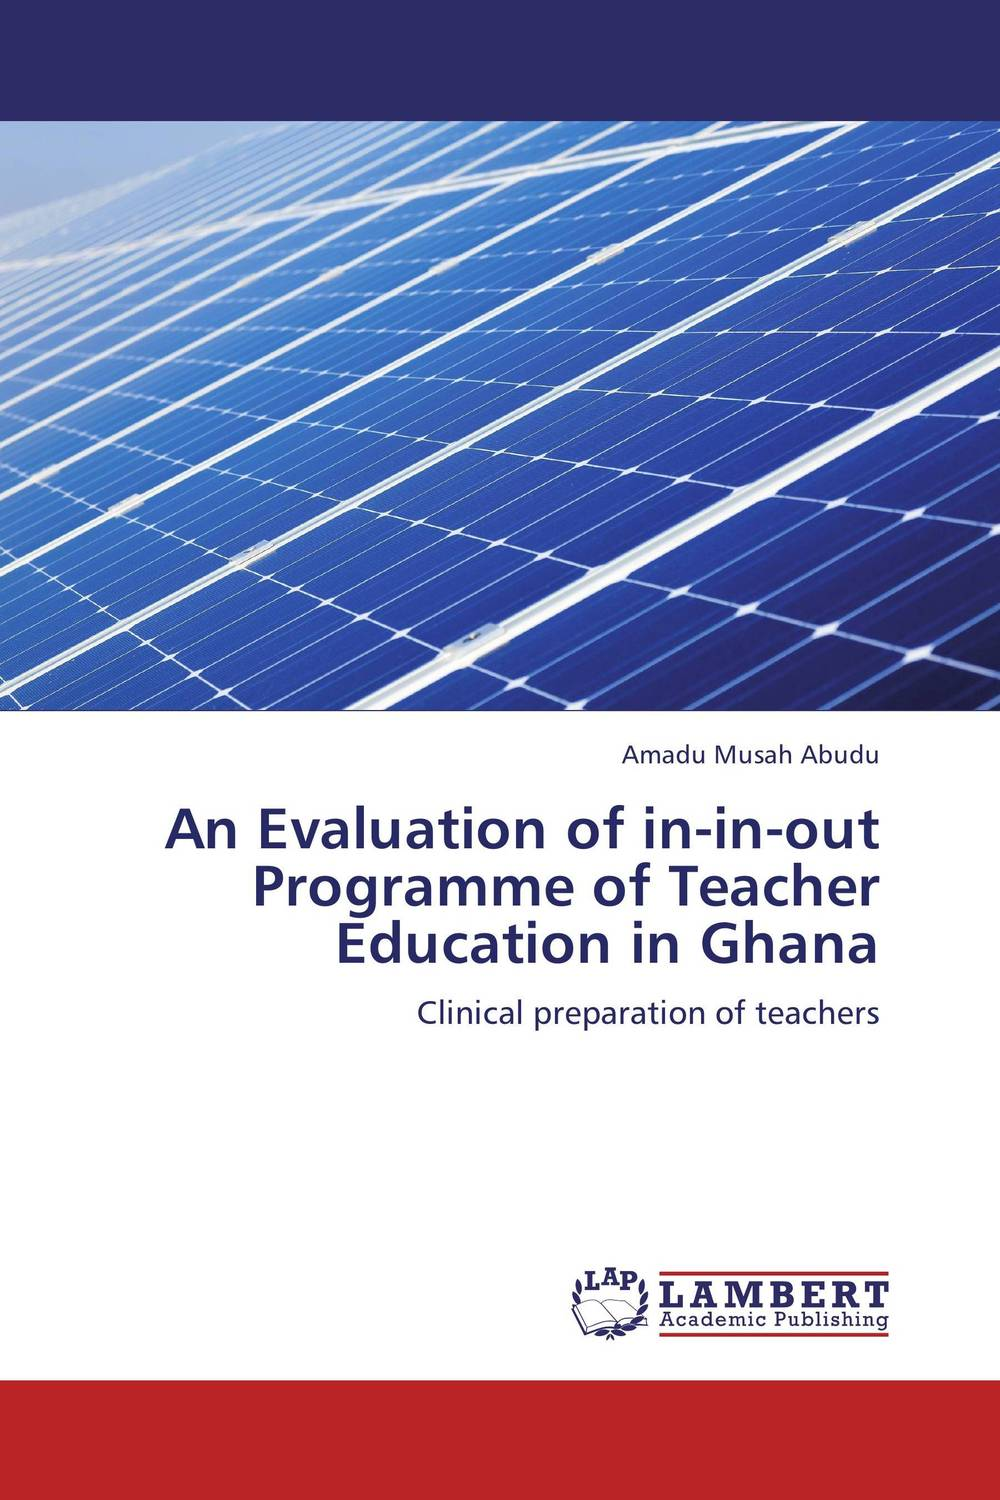 An Evaluation of in-in-out Programme of Teacher Education in Ghana